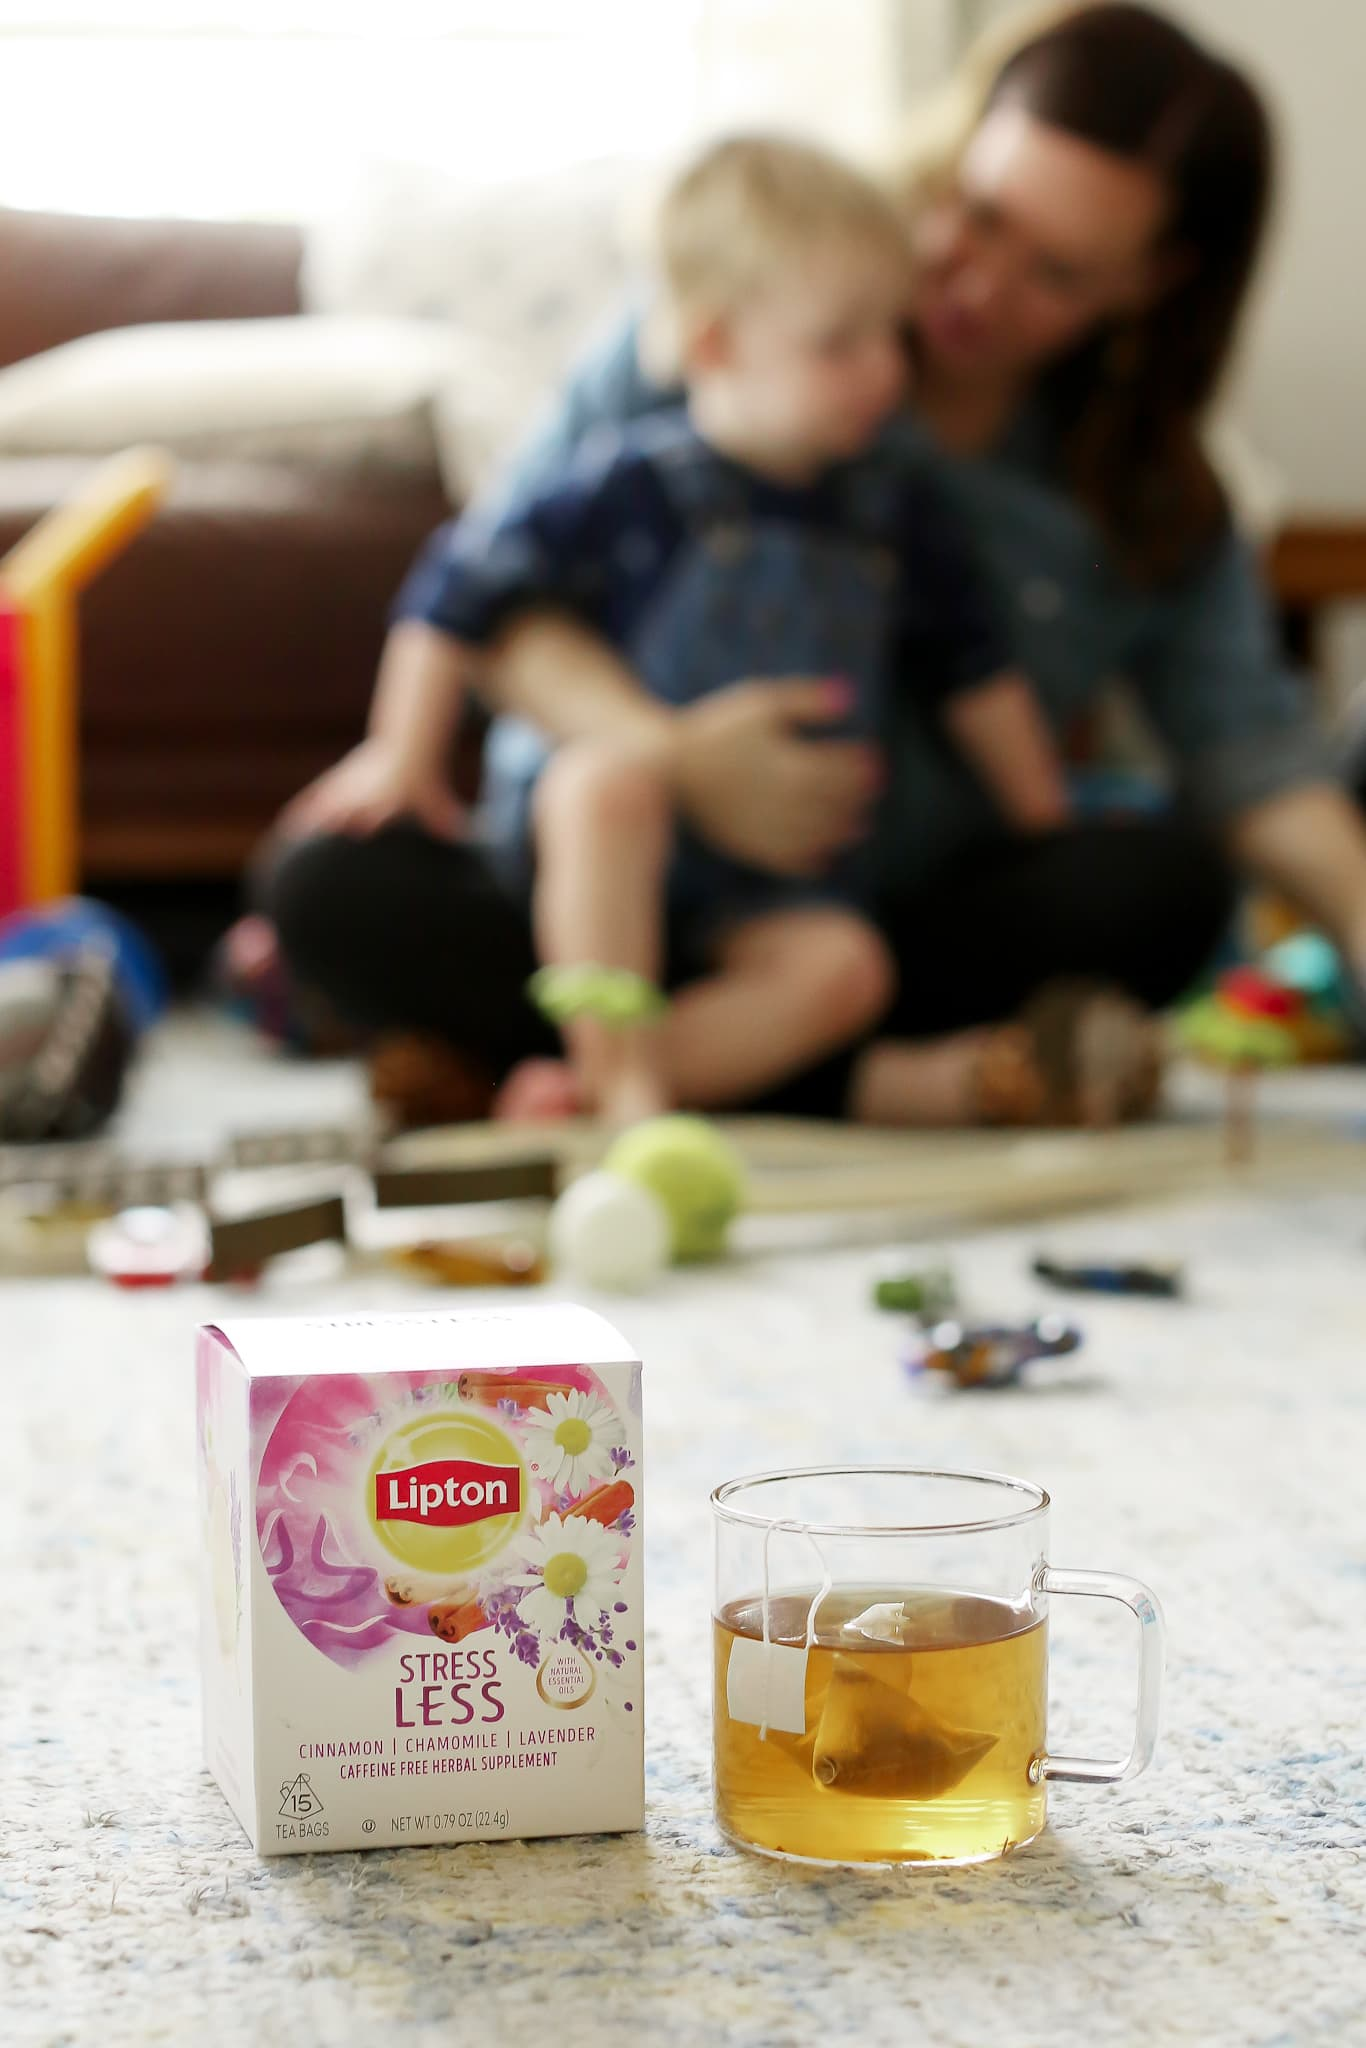 playing with son on ground while enjoying lipton stress less tea